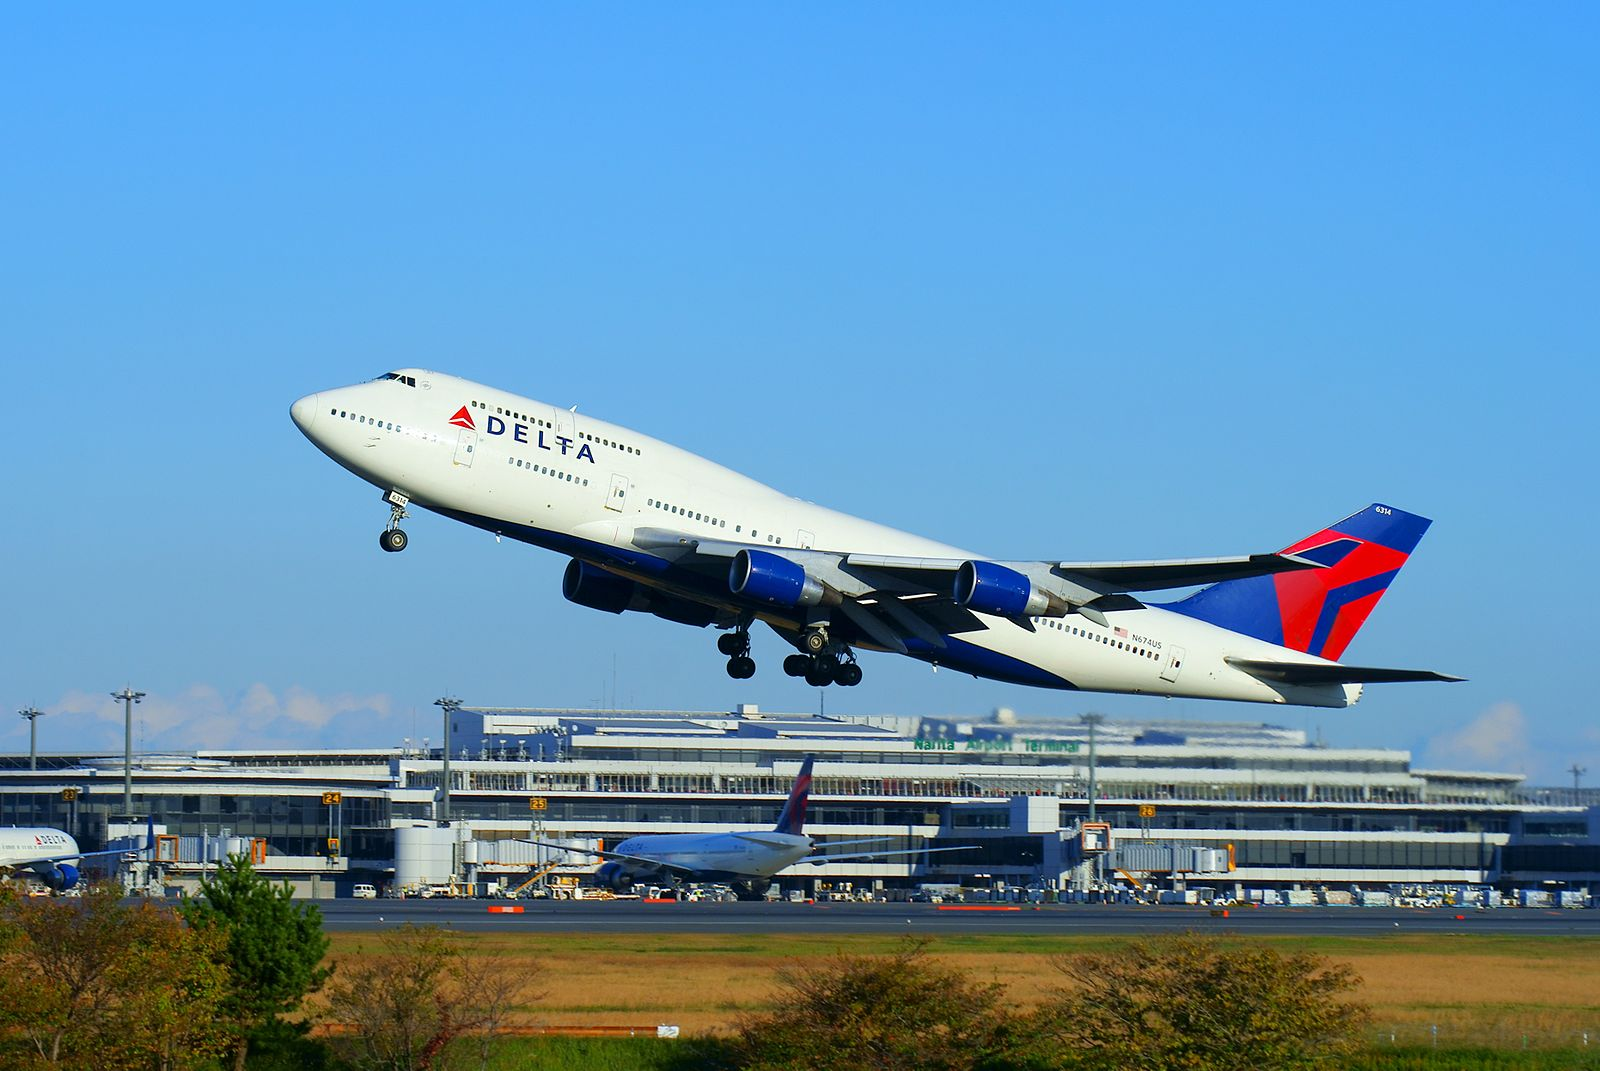 Delta flexed its muscles at CES this year  名無し野電車区, DELTA Airlines B747-400 departing from Tokyo Narita Airport, CC BY-SA 3.0